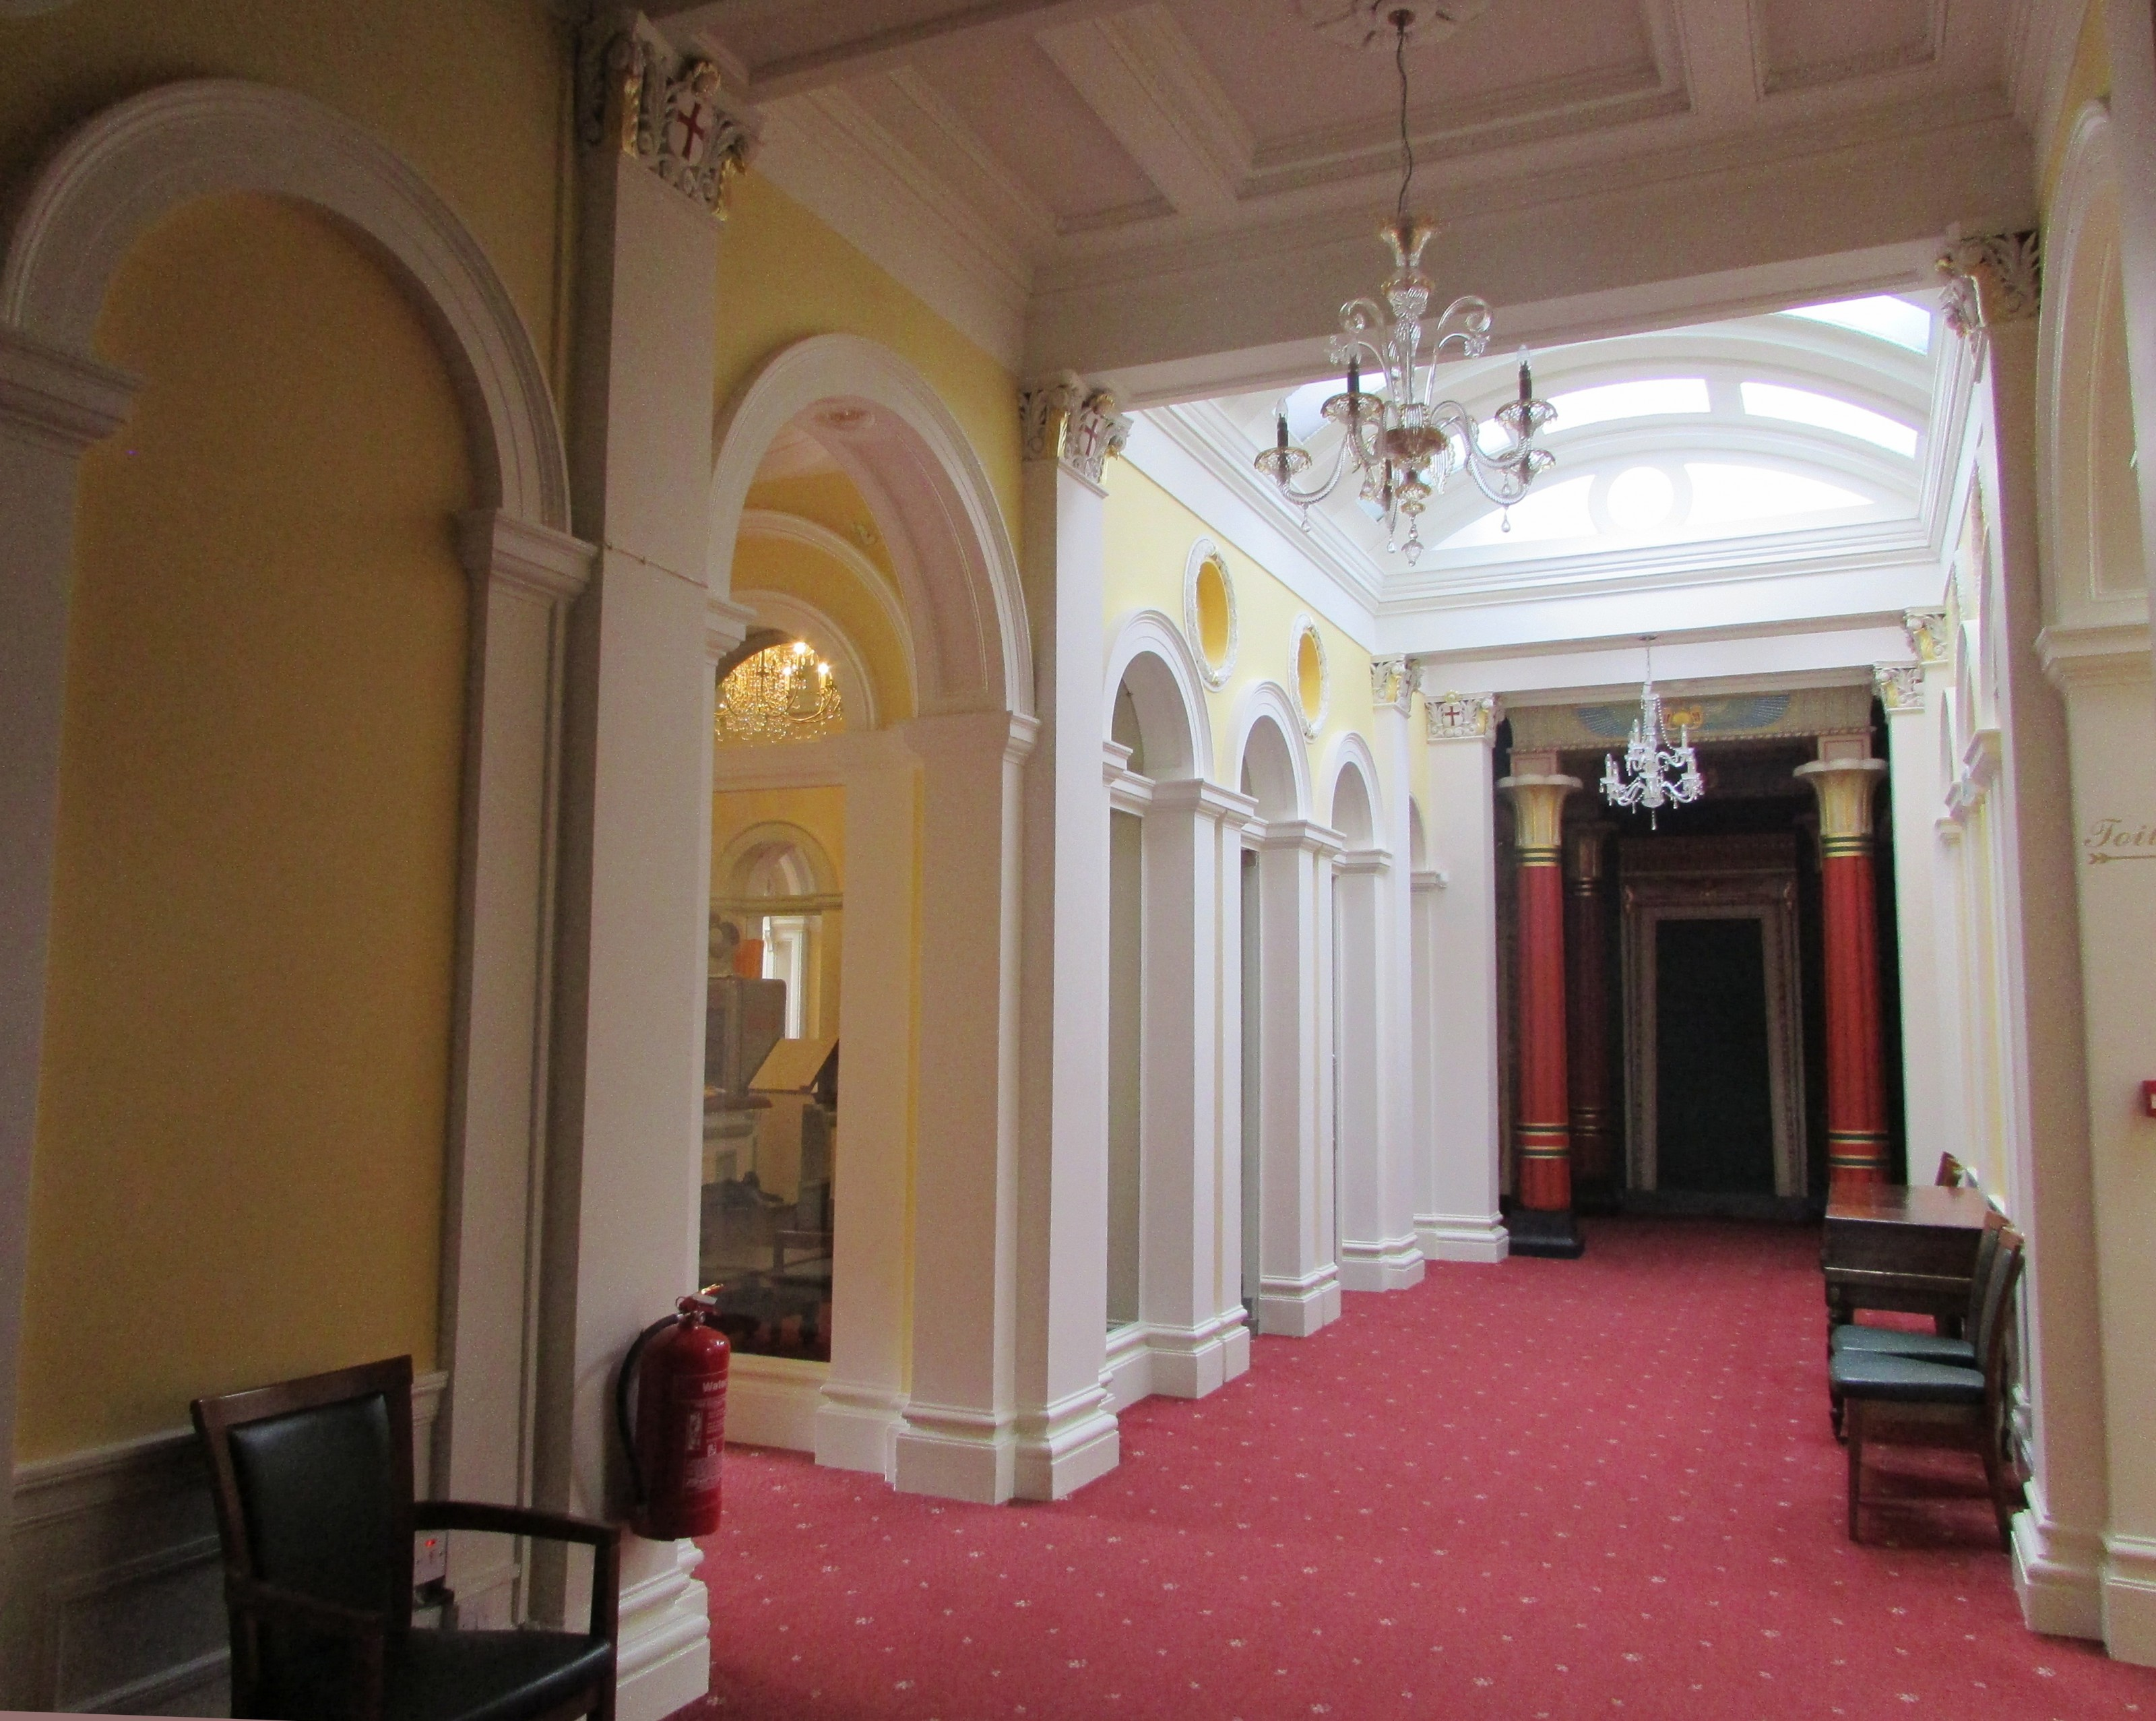 Northwood House interior hallway